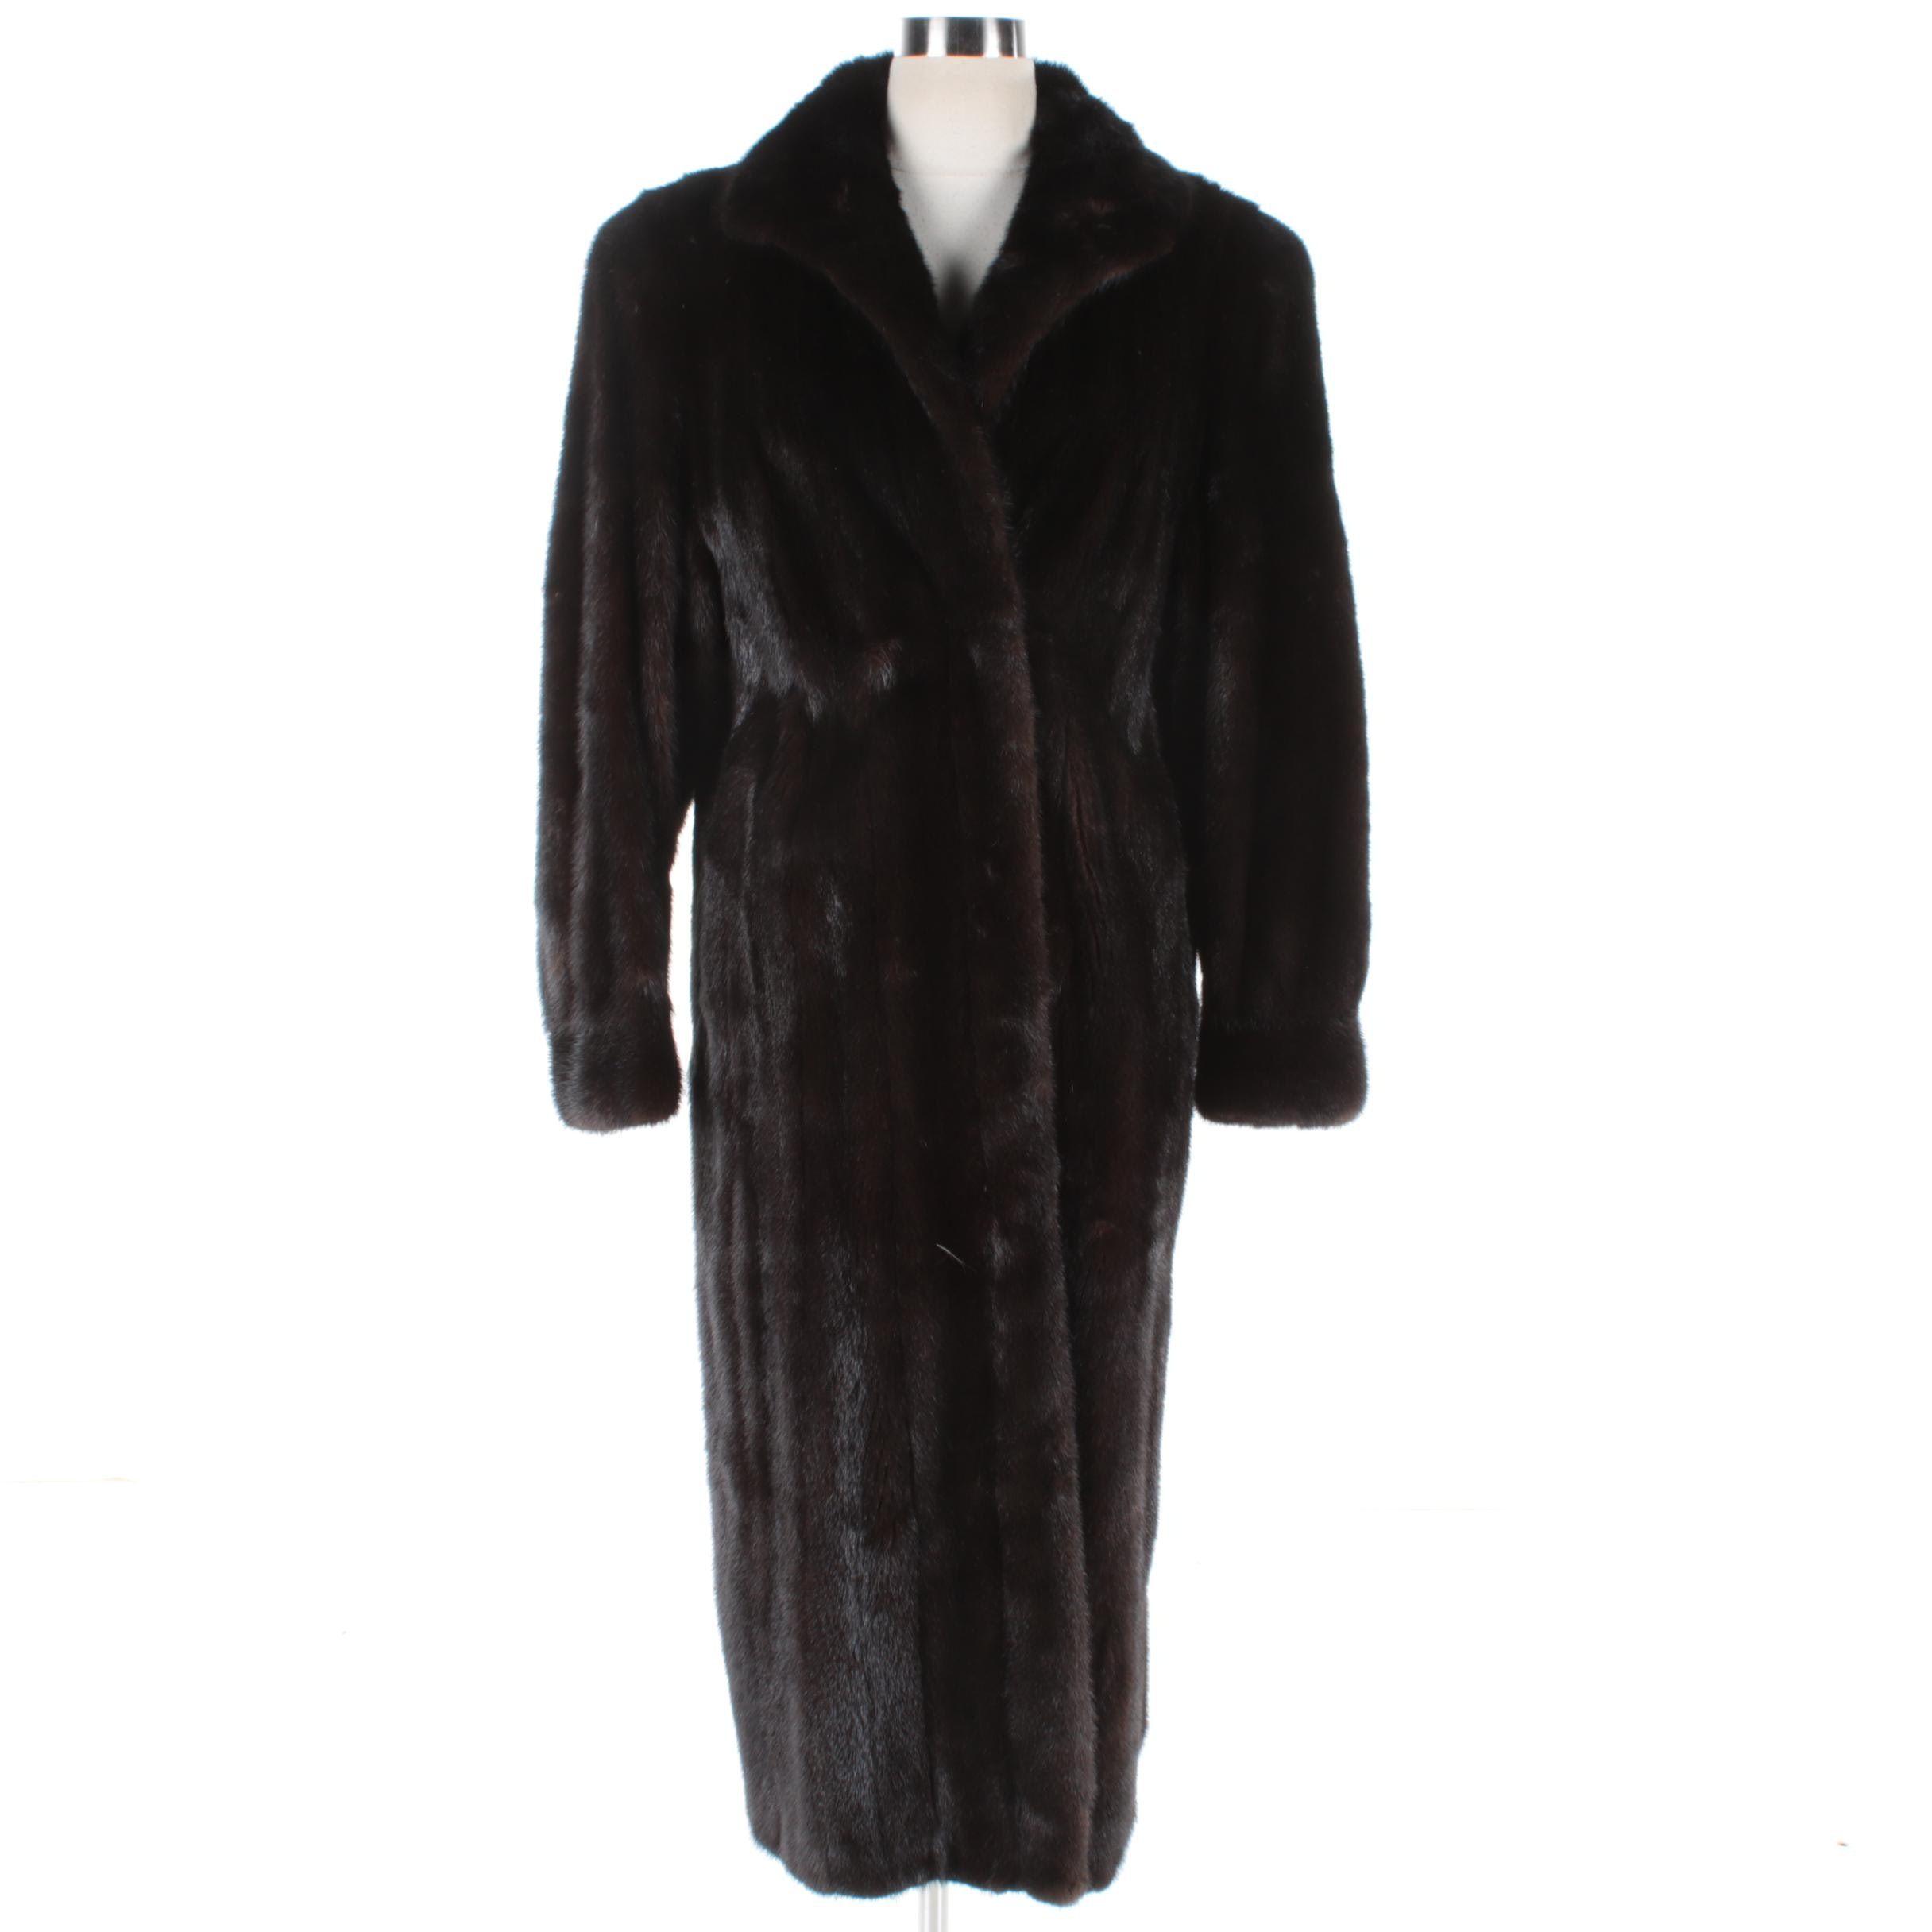 Women's Dark Brown Mink Fur Coat